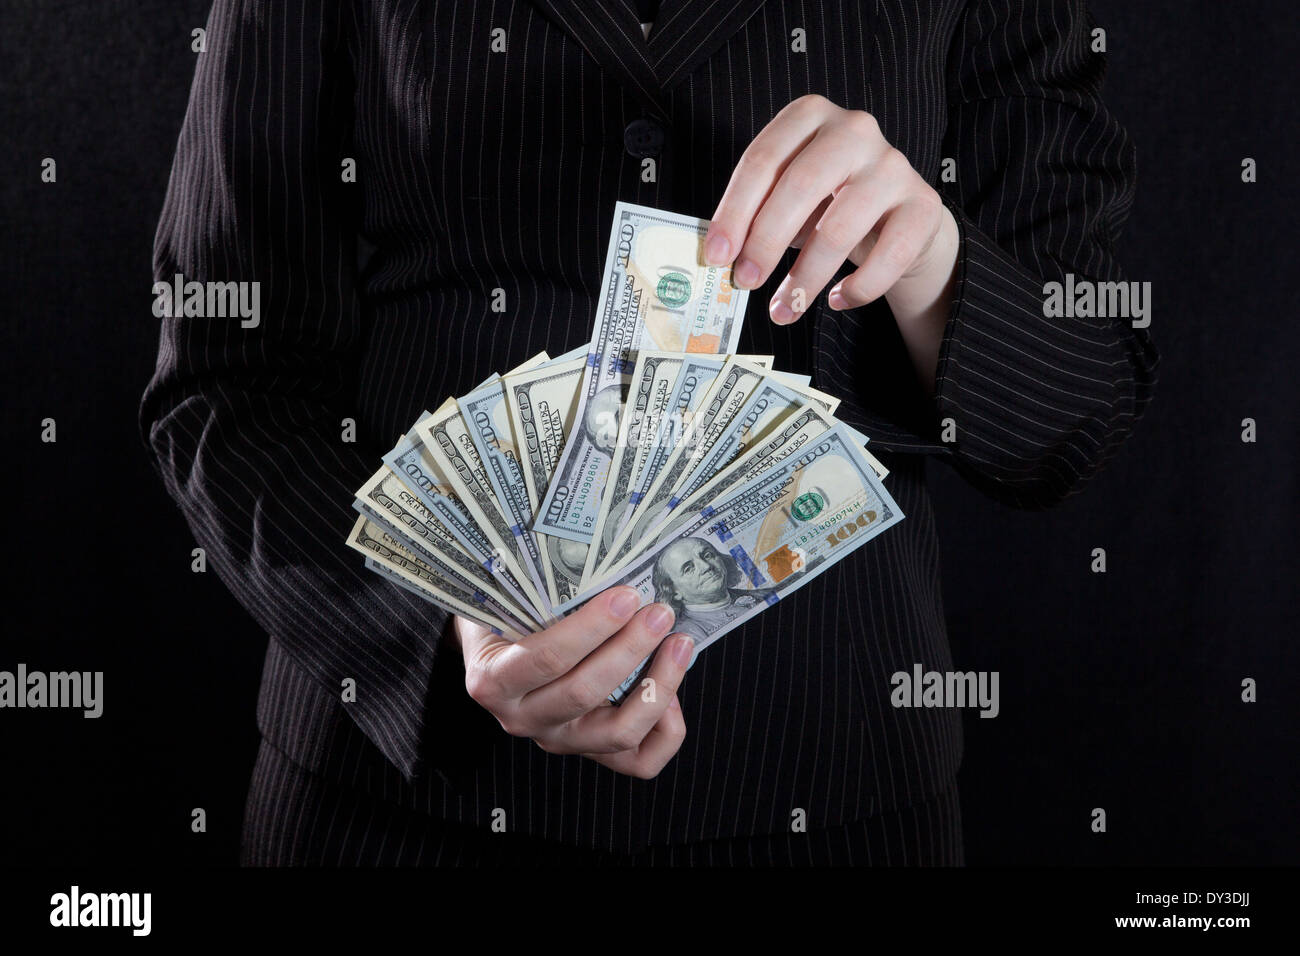 Take a banknote from cash - Stock Image